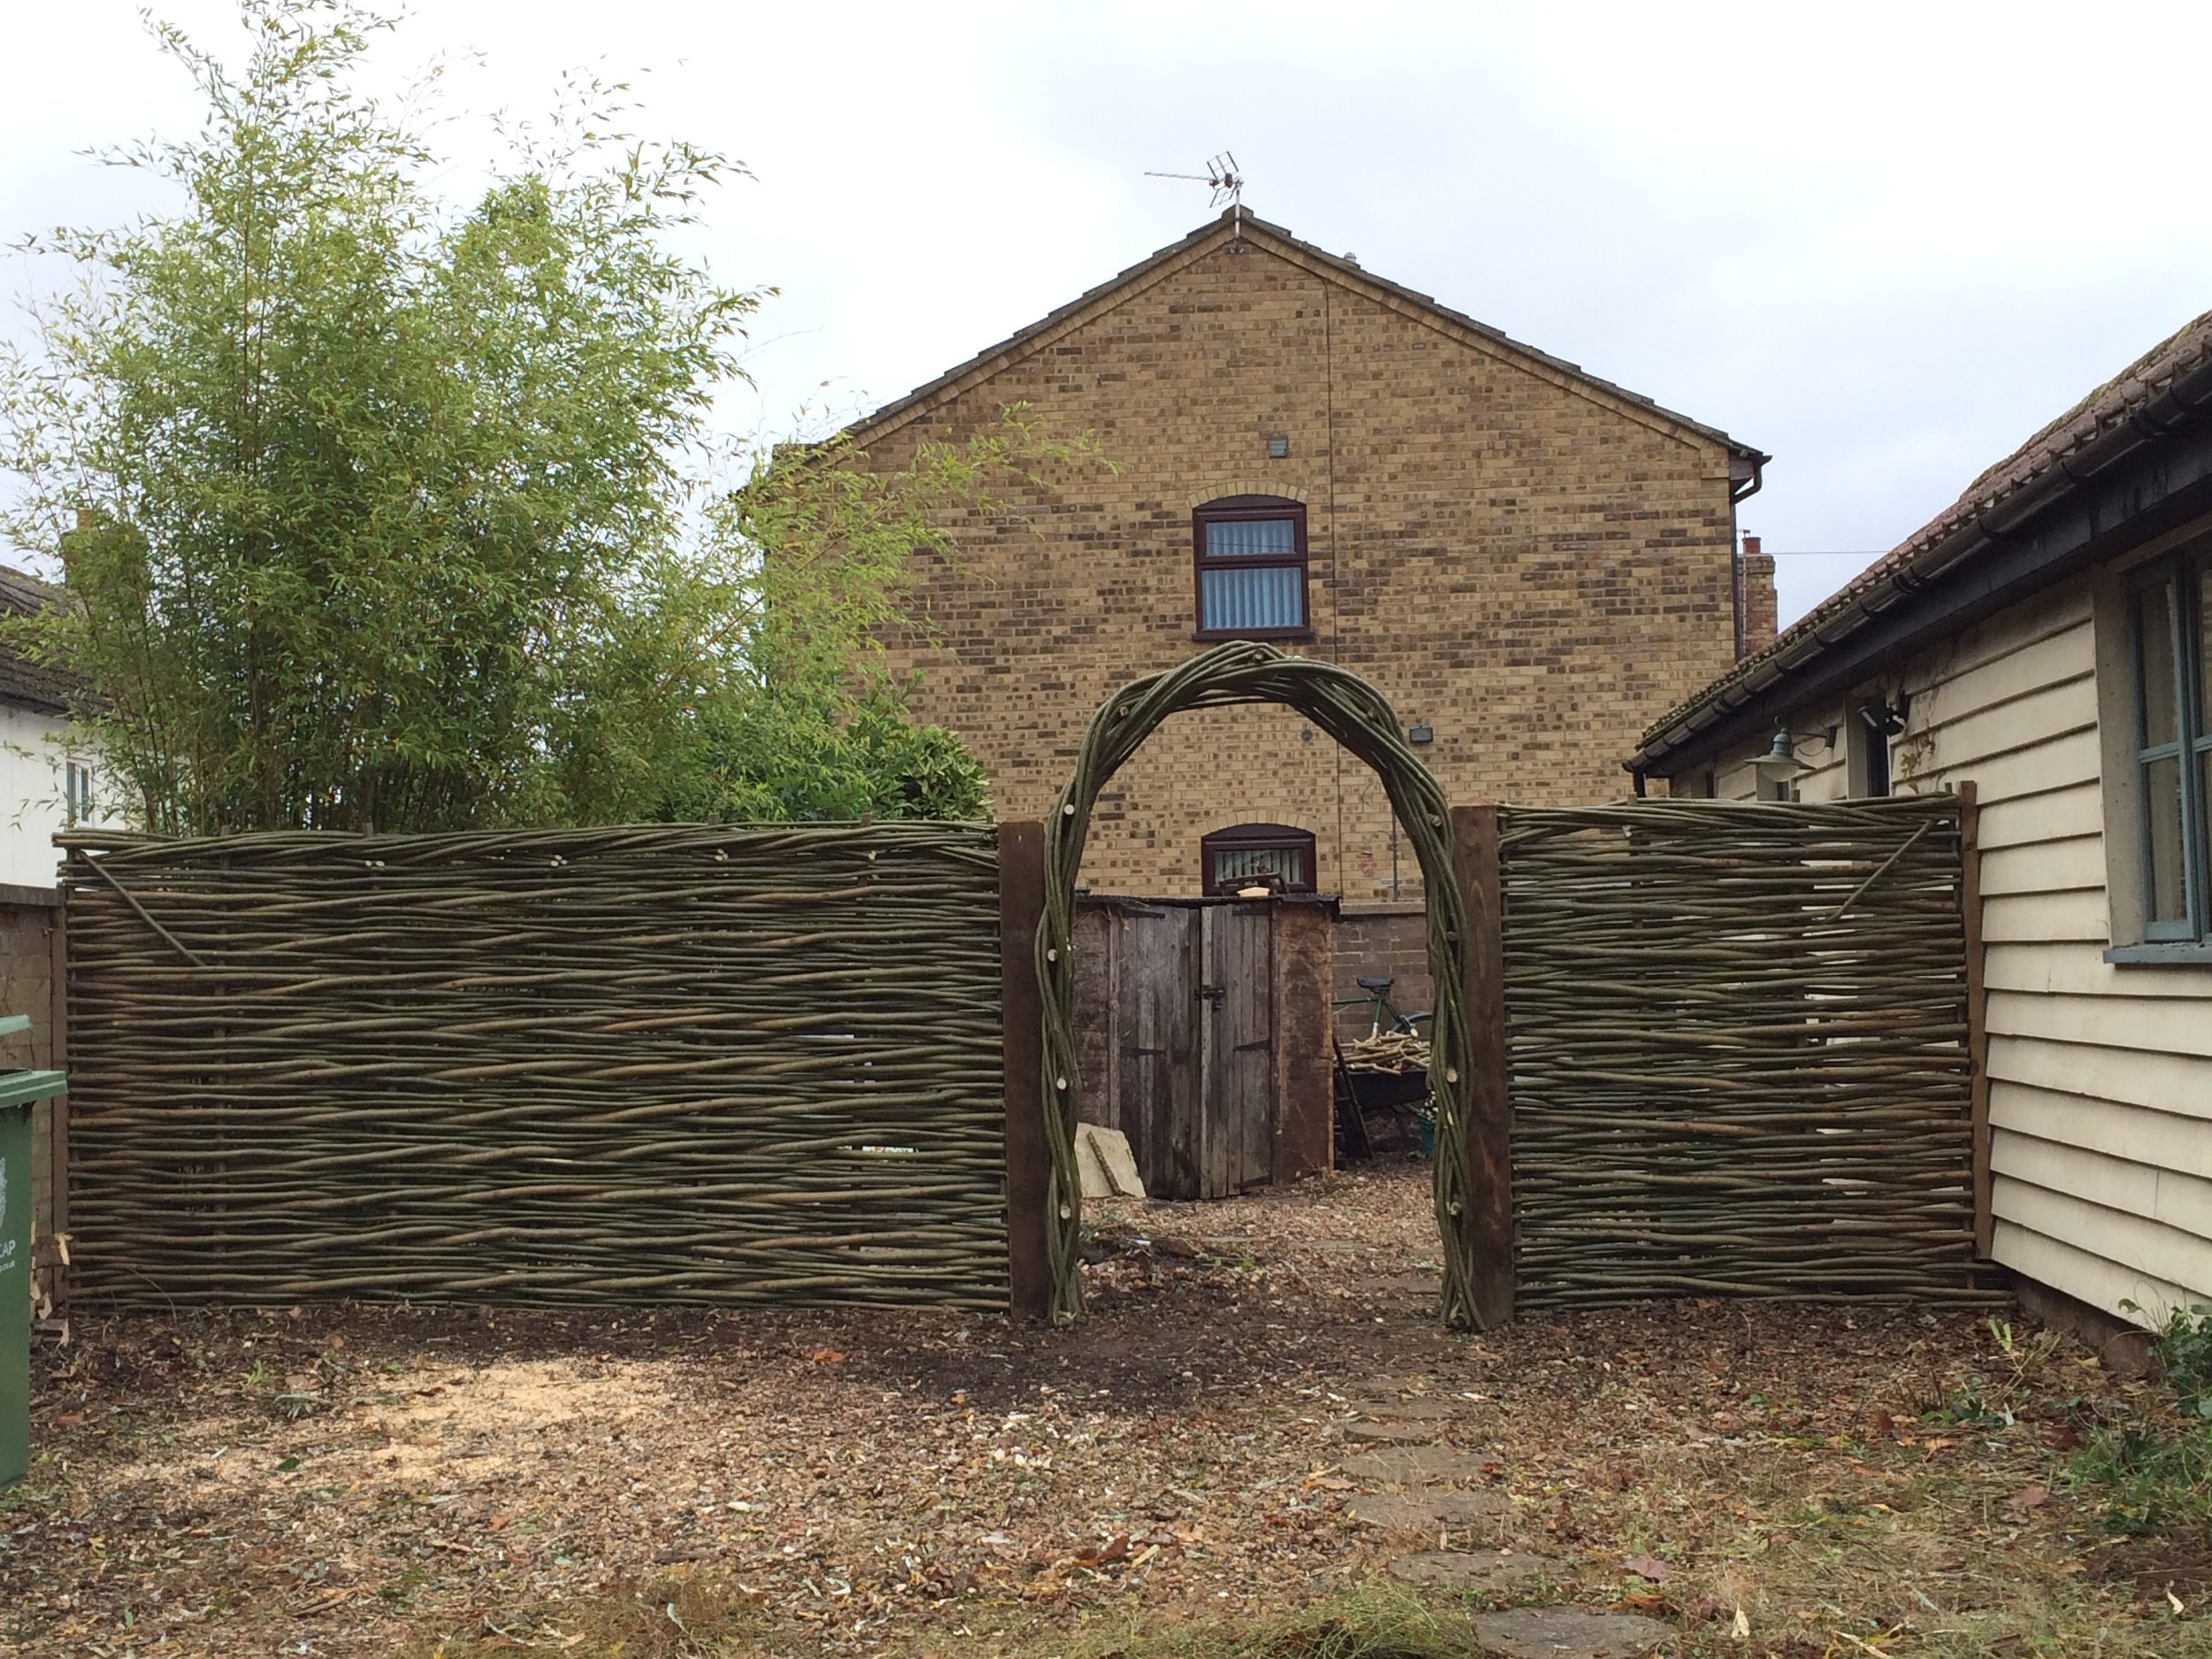 Woven willow archway